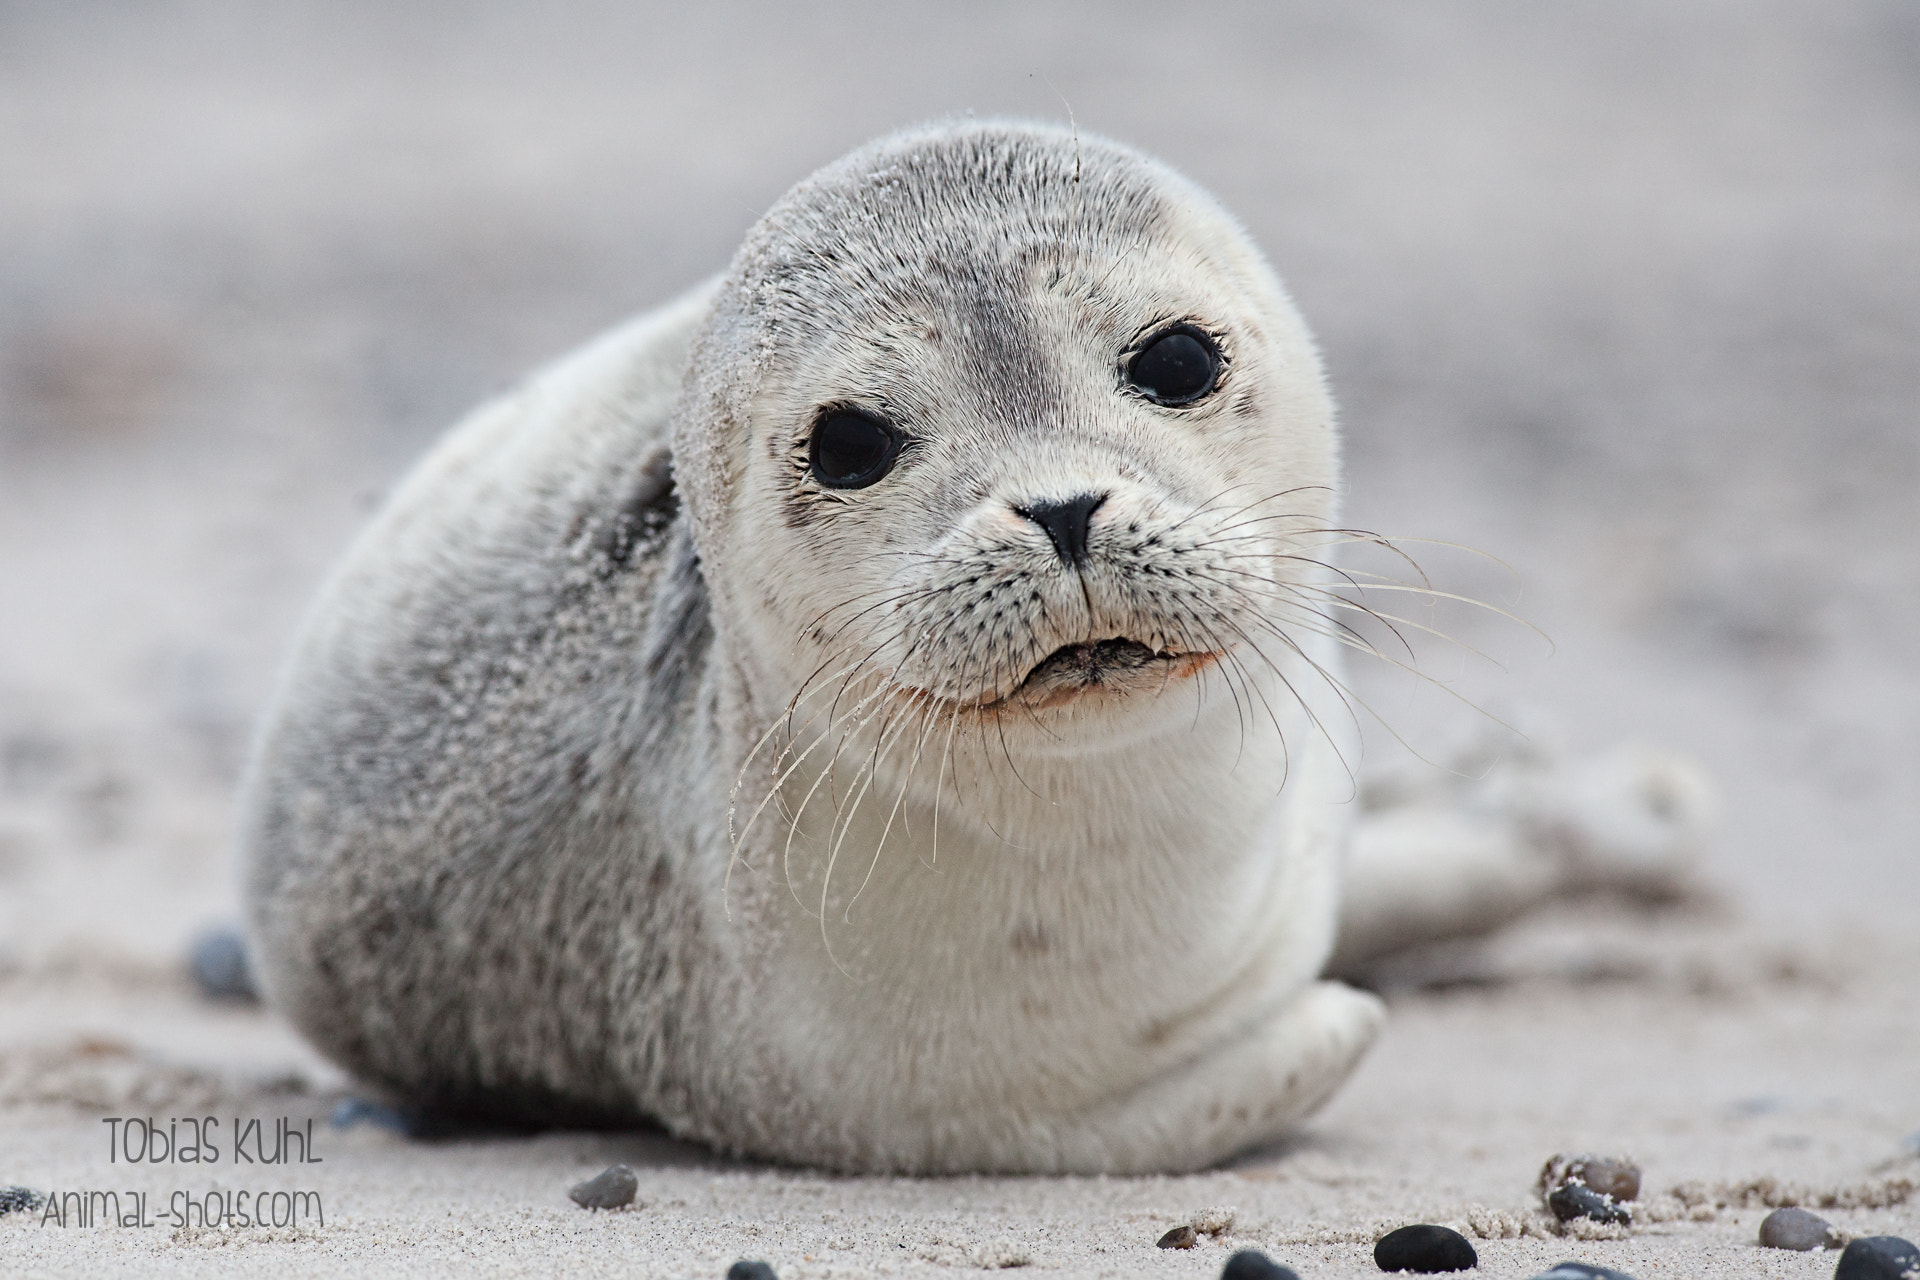 Photograph Cute Seal :) by Tobias Kuhl on 500px